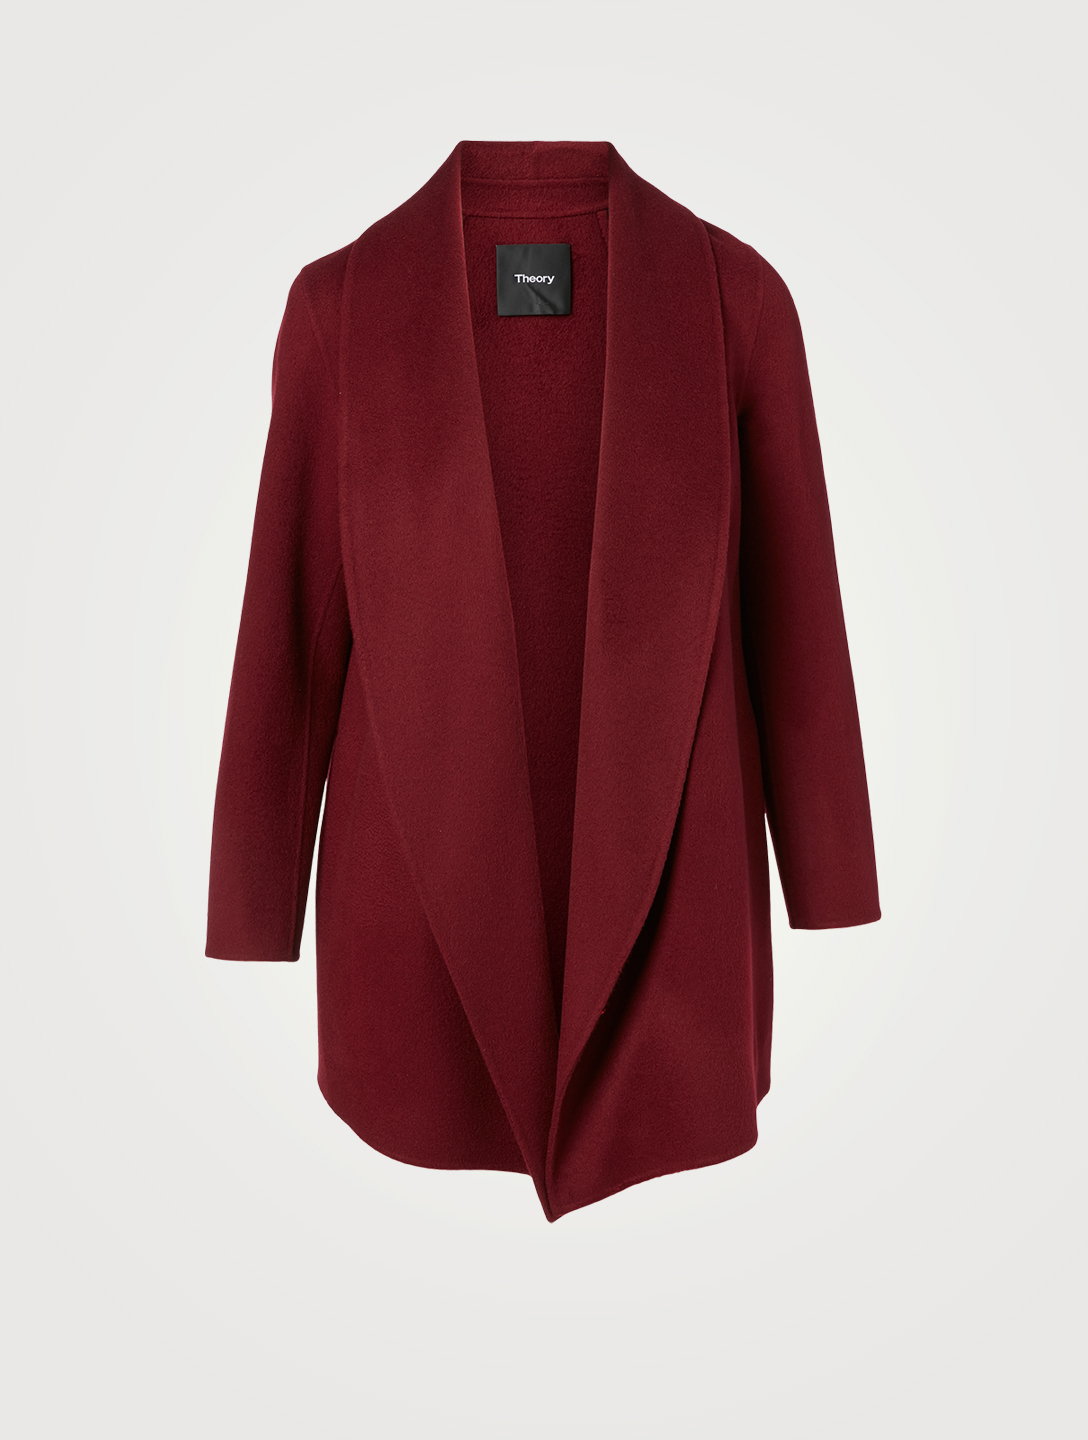 THEORY Clairene Wool And Cashmere Shawl Coat Women's Red